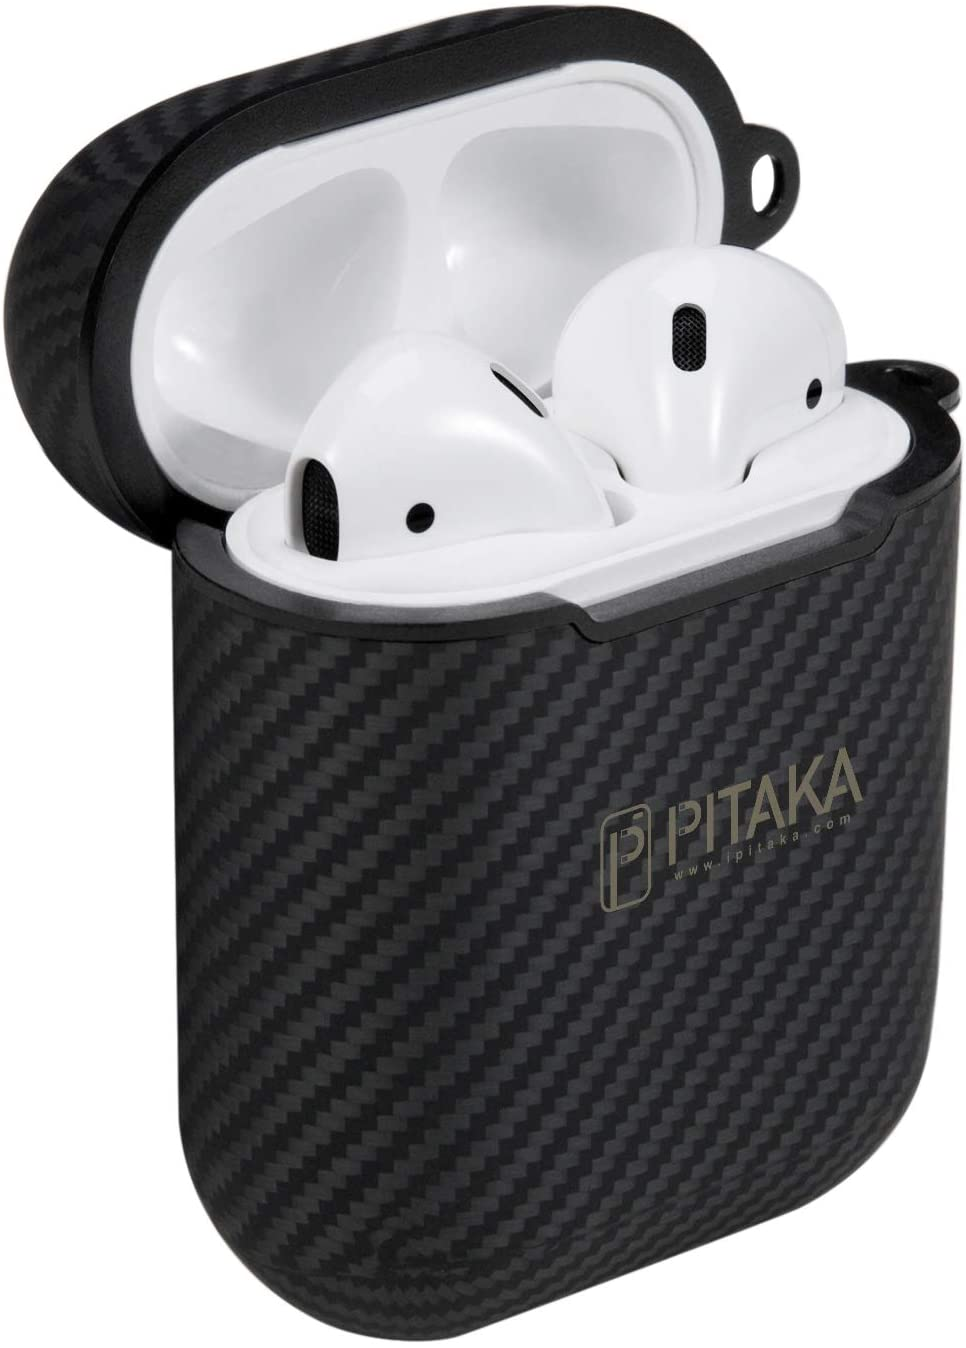 PITAKA Protective AirPods Case [AirPal Mini] Dual-Side Wireless Charging Case Slim-Fit Shockproof Aramid Fiber Cover and Skin Compatible with Apple AirPods Gen 2 and 1 Earbuds Accessories Black